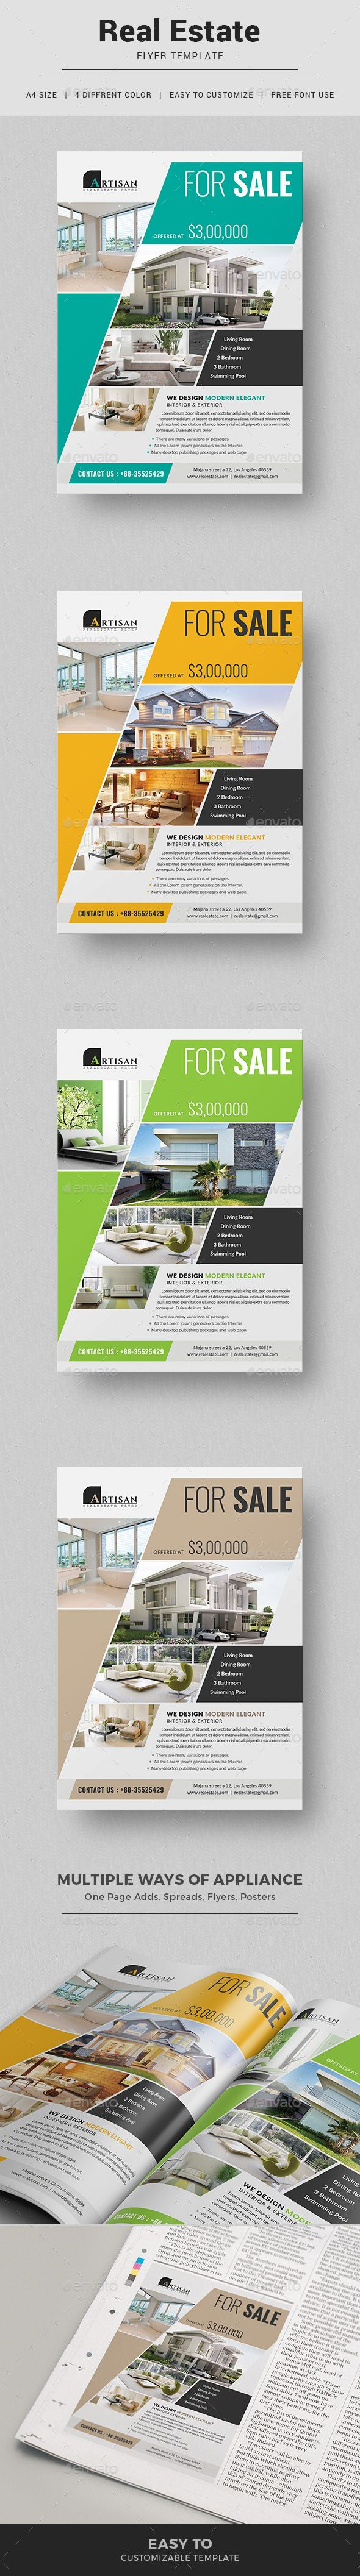 Real Estate Flyer Download https://graphicriver.net/item/real-estate-flyer/17495508?ref=themedevisers